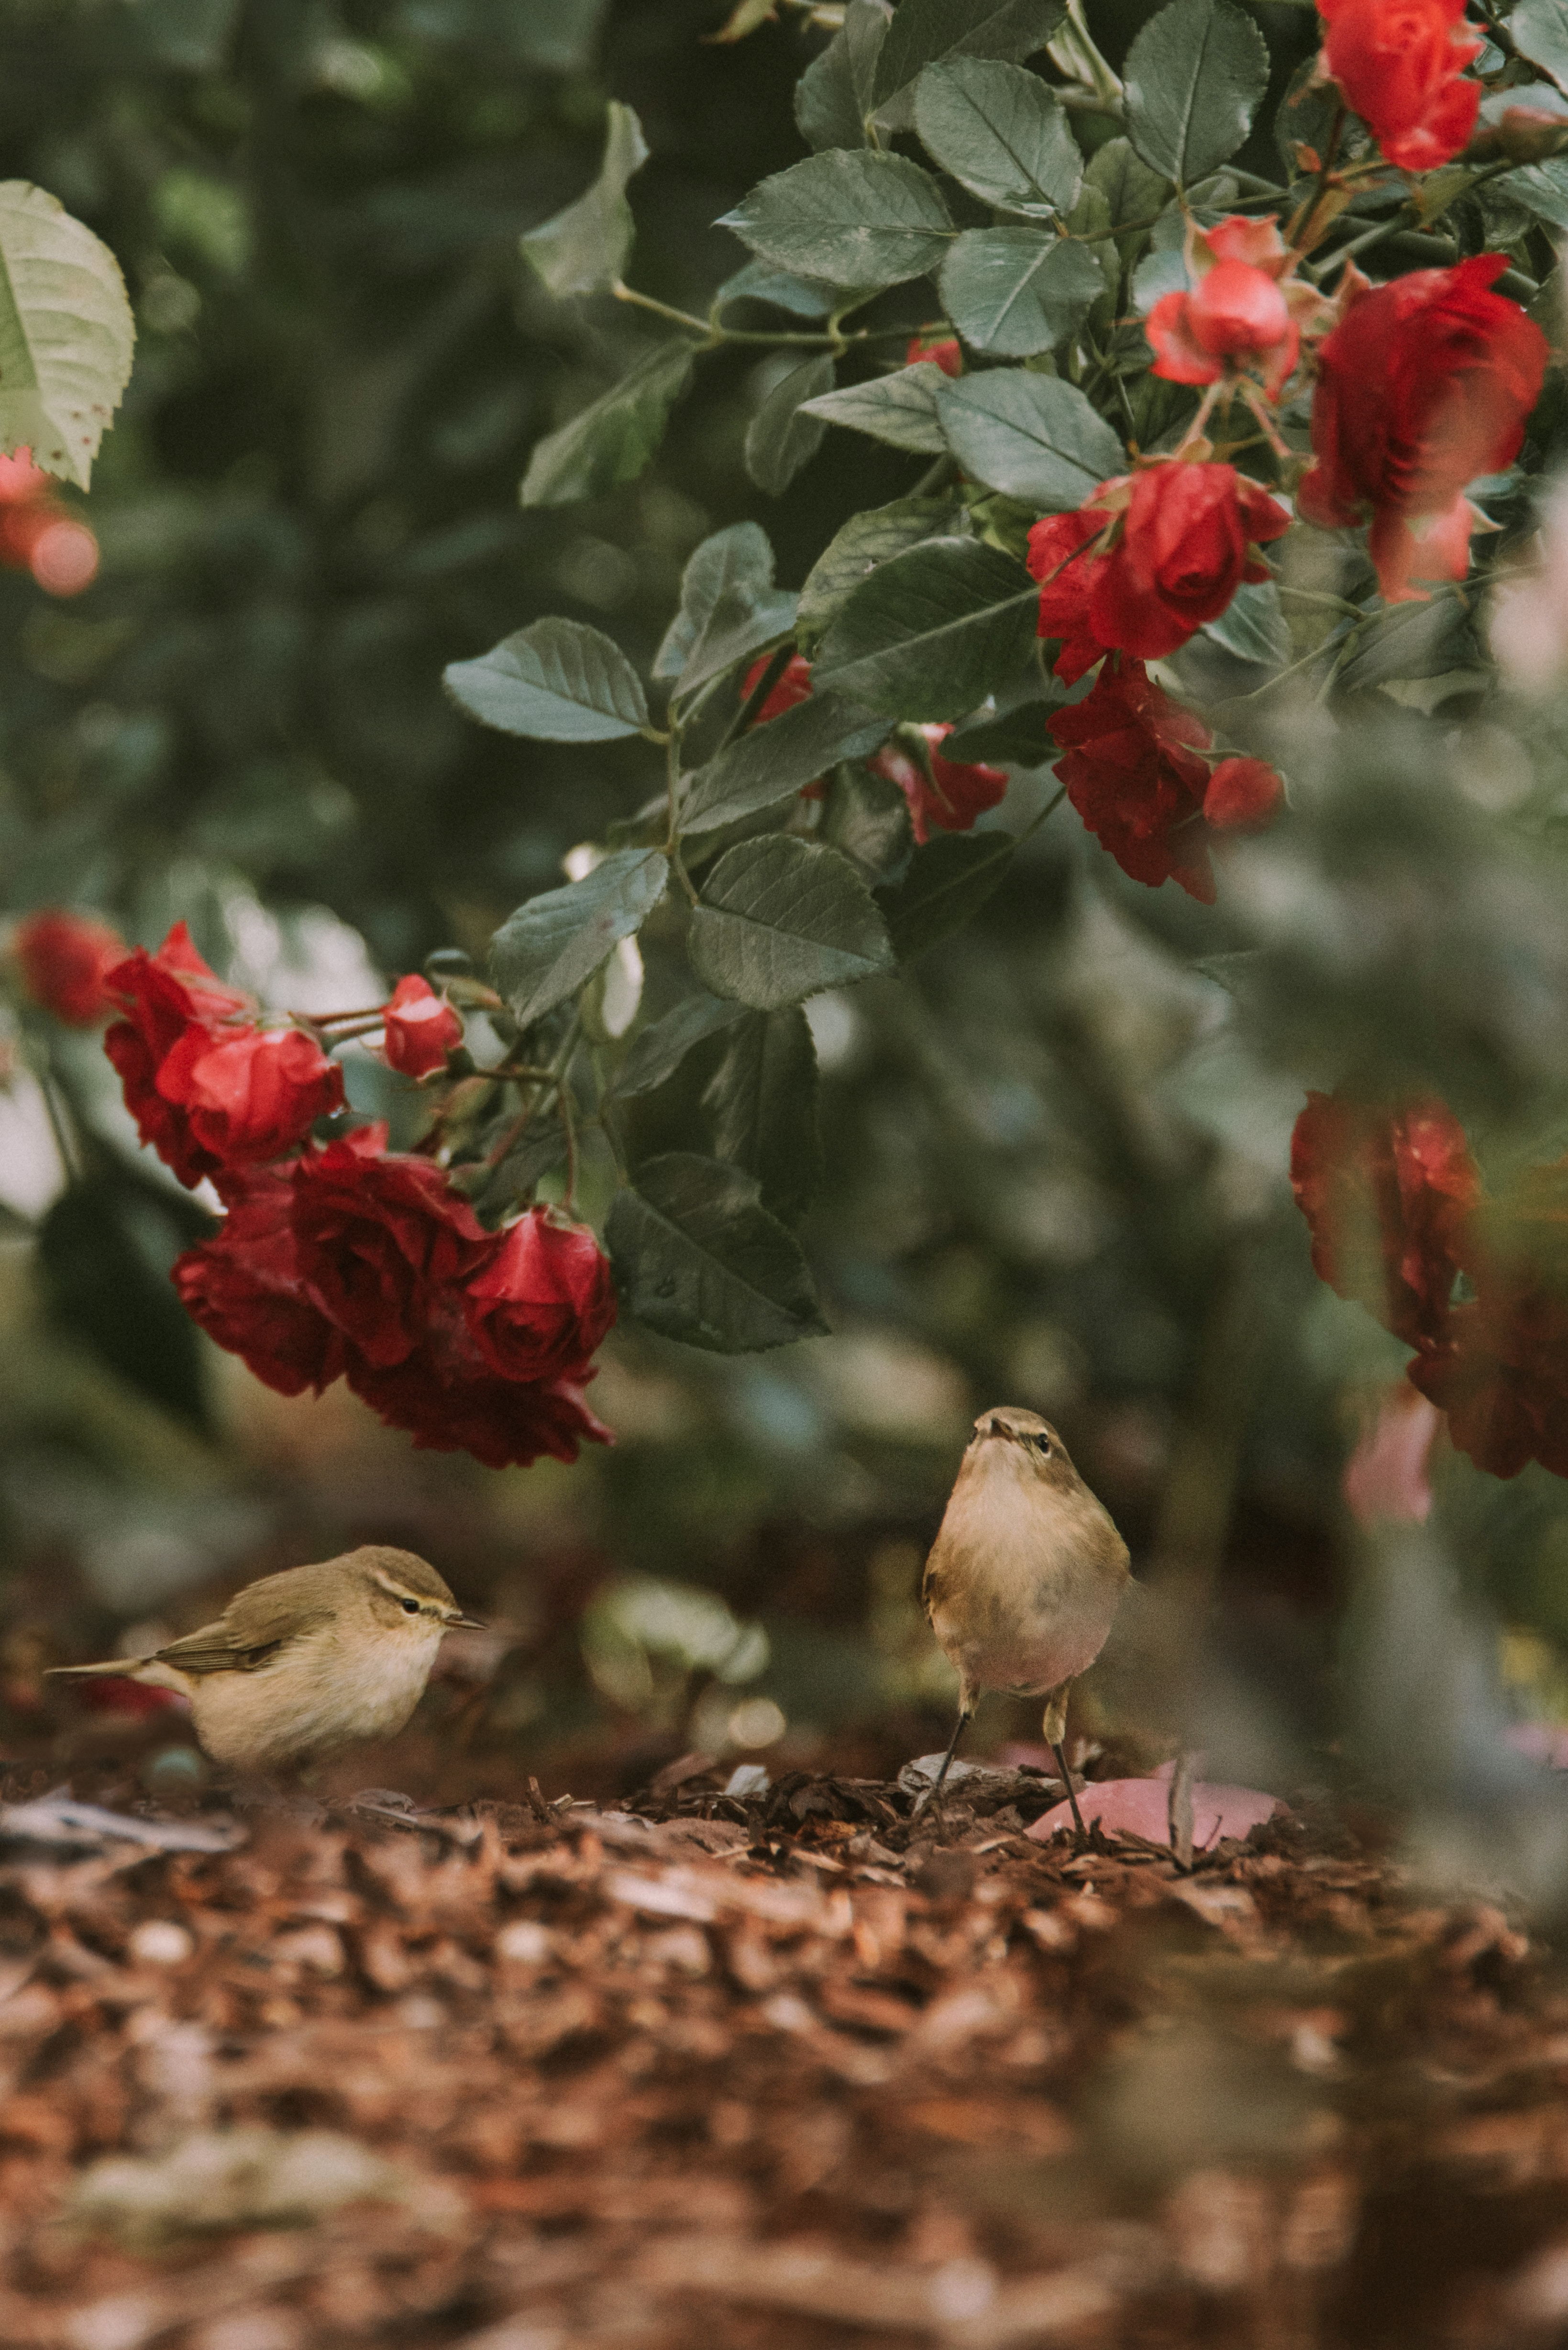 74523 download wallpaper Animals, Flowers, Roses, Birds screensavers and pictures for free